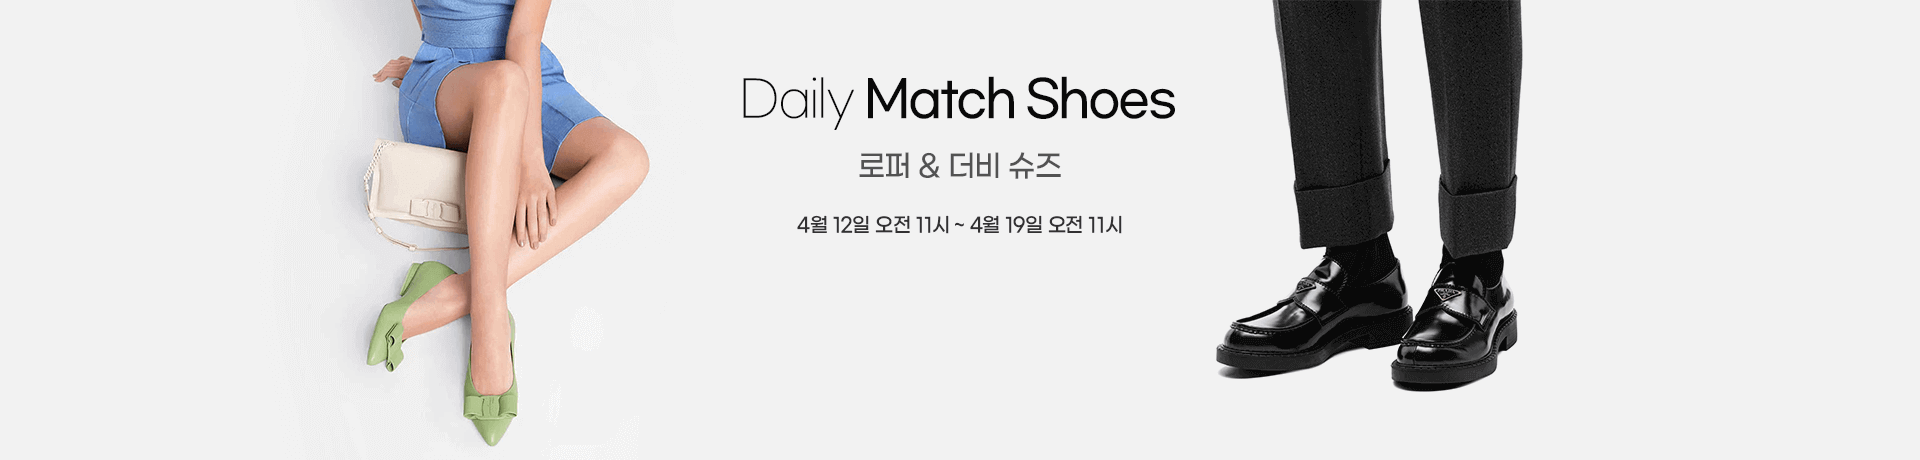 210412_sy_daily-match-shoes-heel-heel_pc_f2f2f2